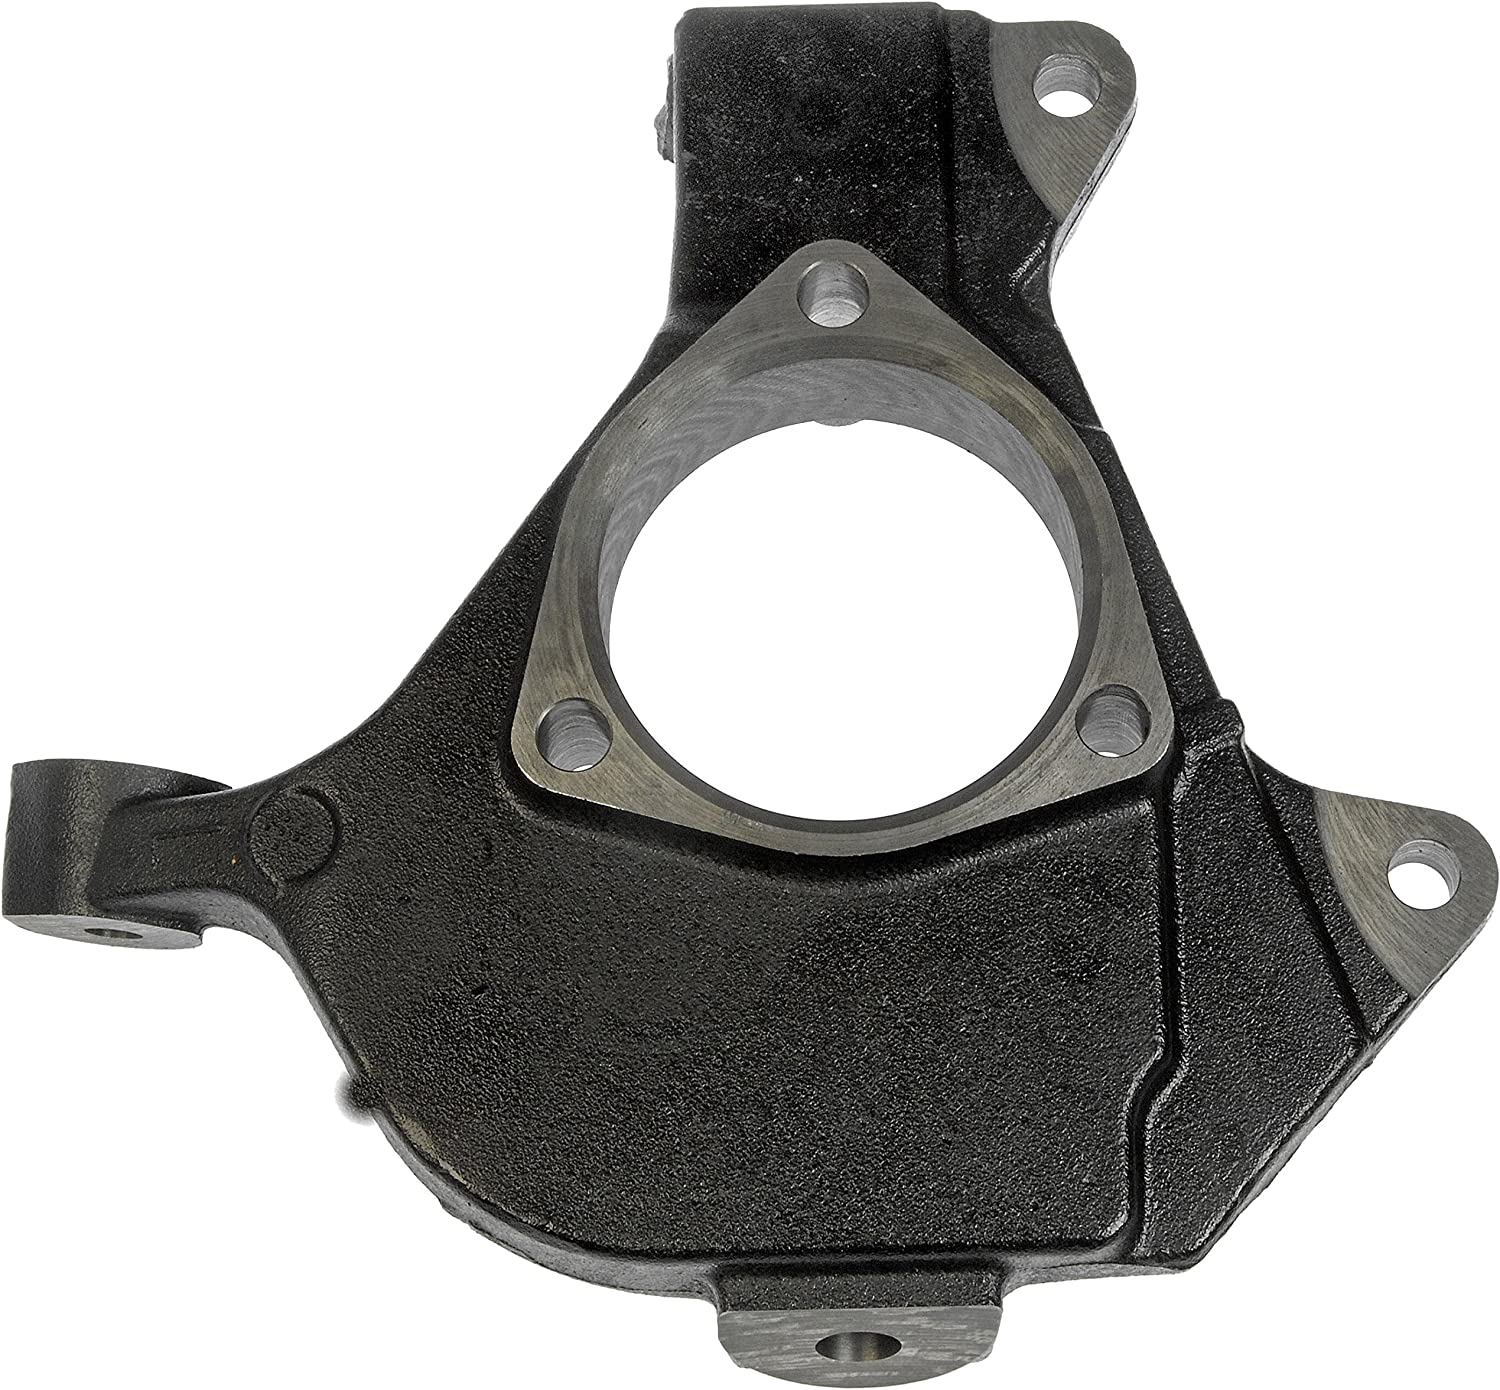 Dorman 697-907 Front Driver Side Steering Knuckle for Select Cadillac Chevrolet GMC Models